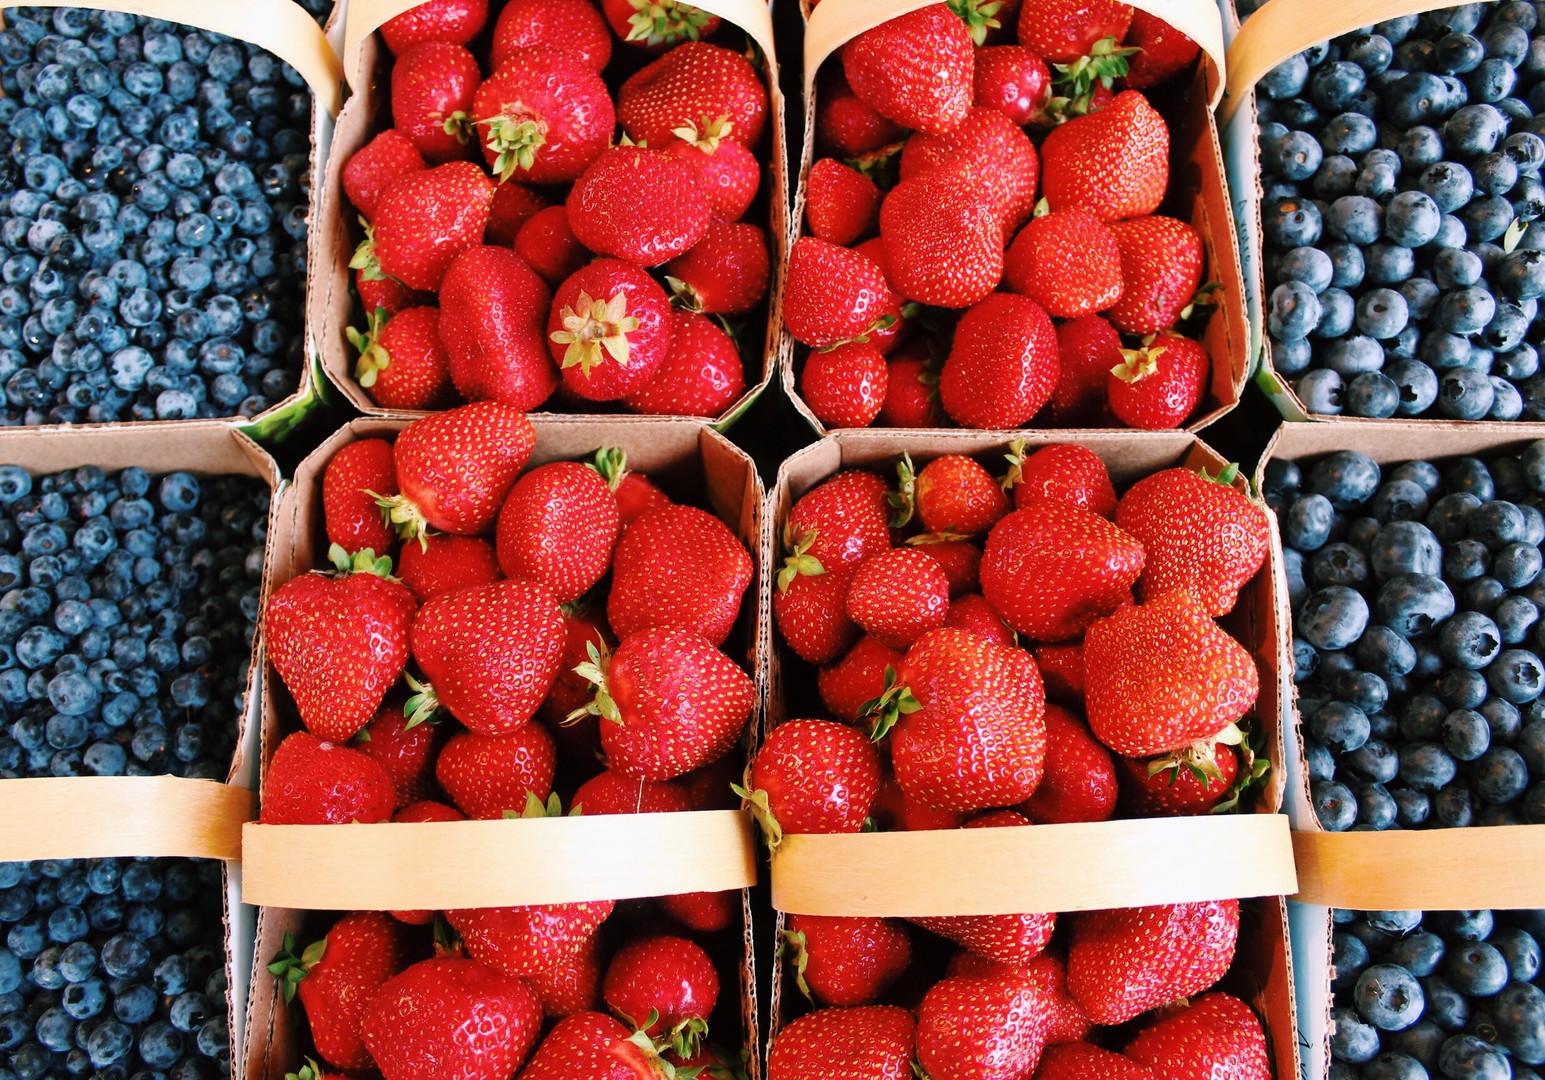 Strawberries and blueberries from Montreal's Le Marché Jean-Talon